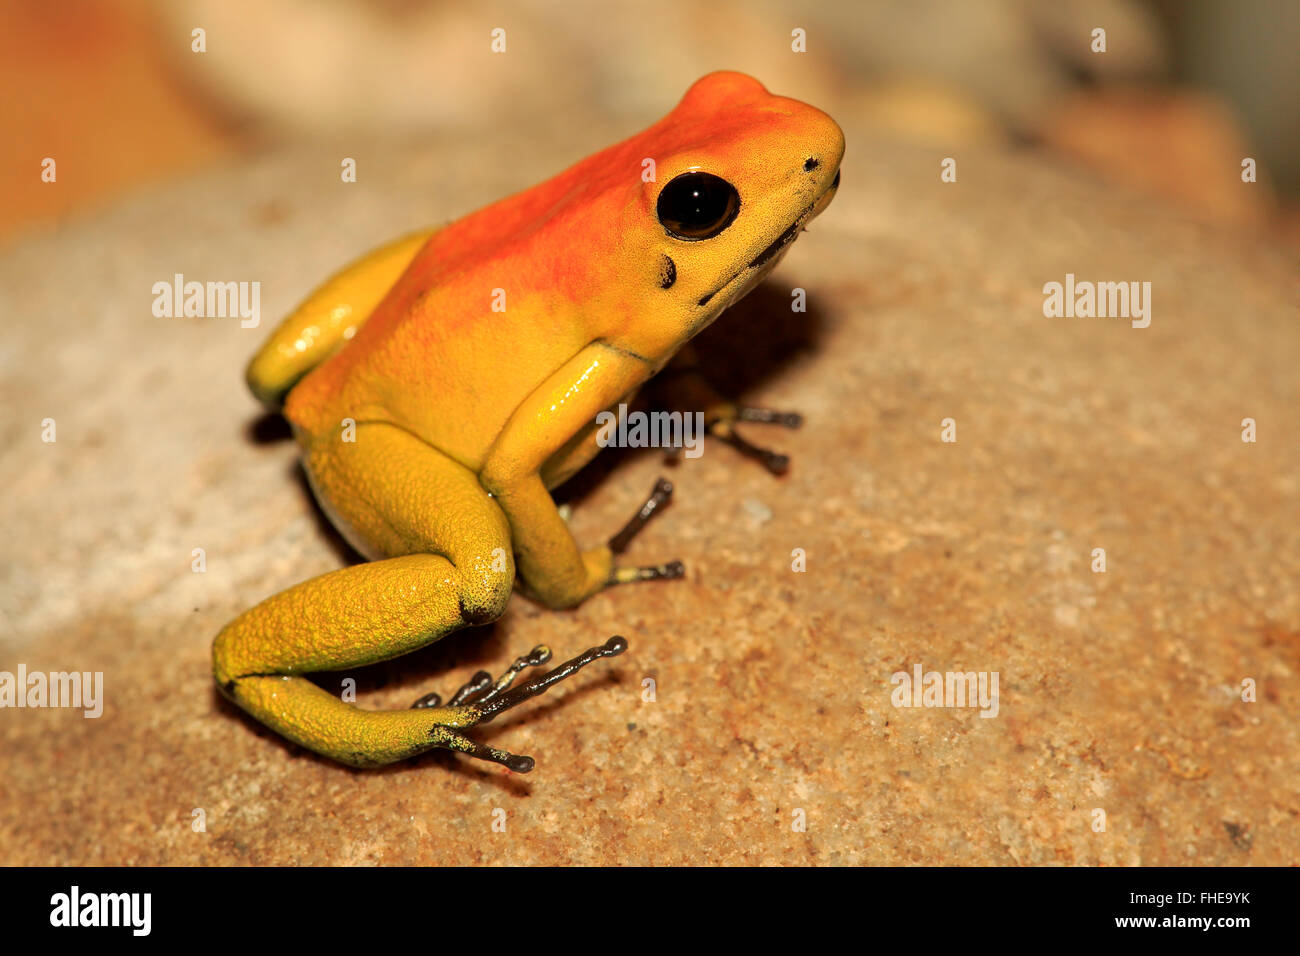 Black Legged Dart Frog, adult, South America / (Phyllobates bicolor) Stock Photo